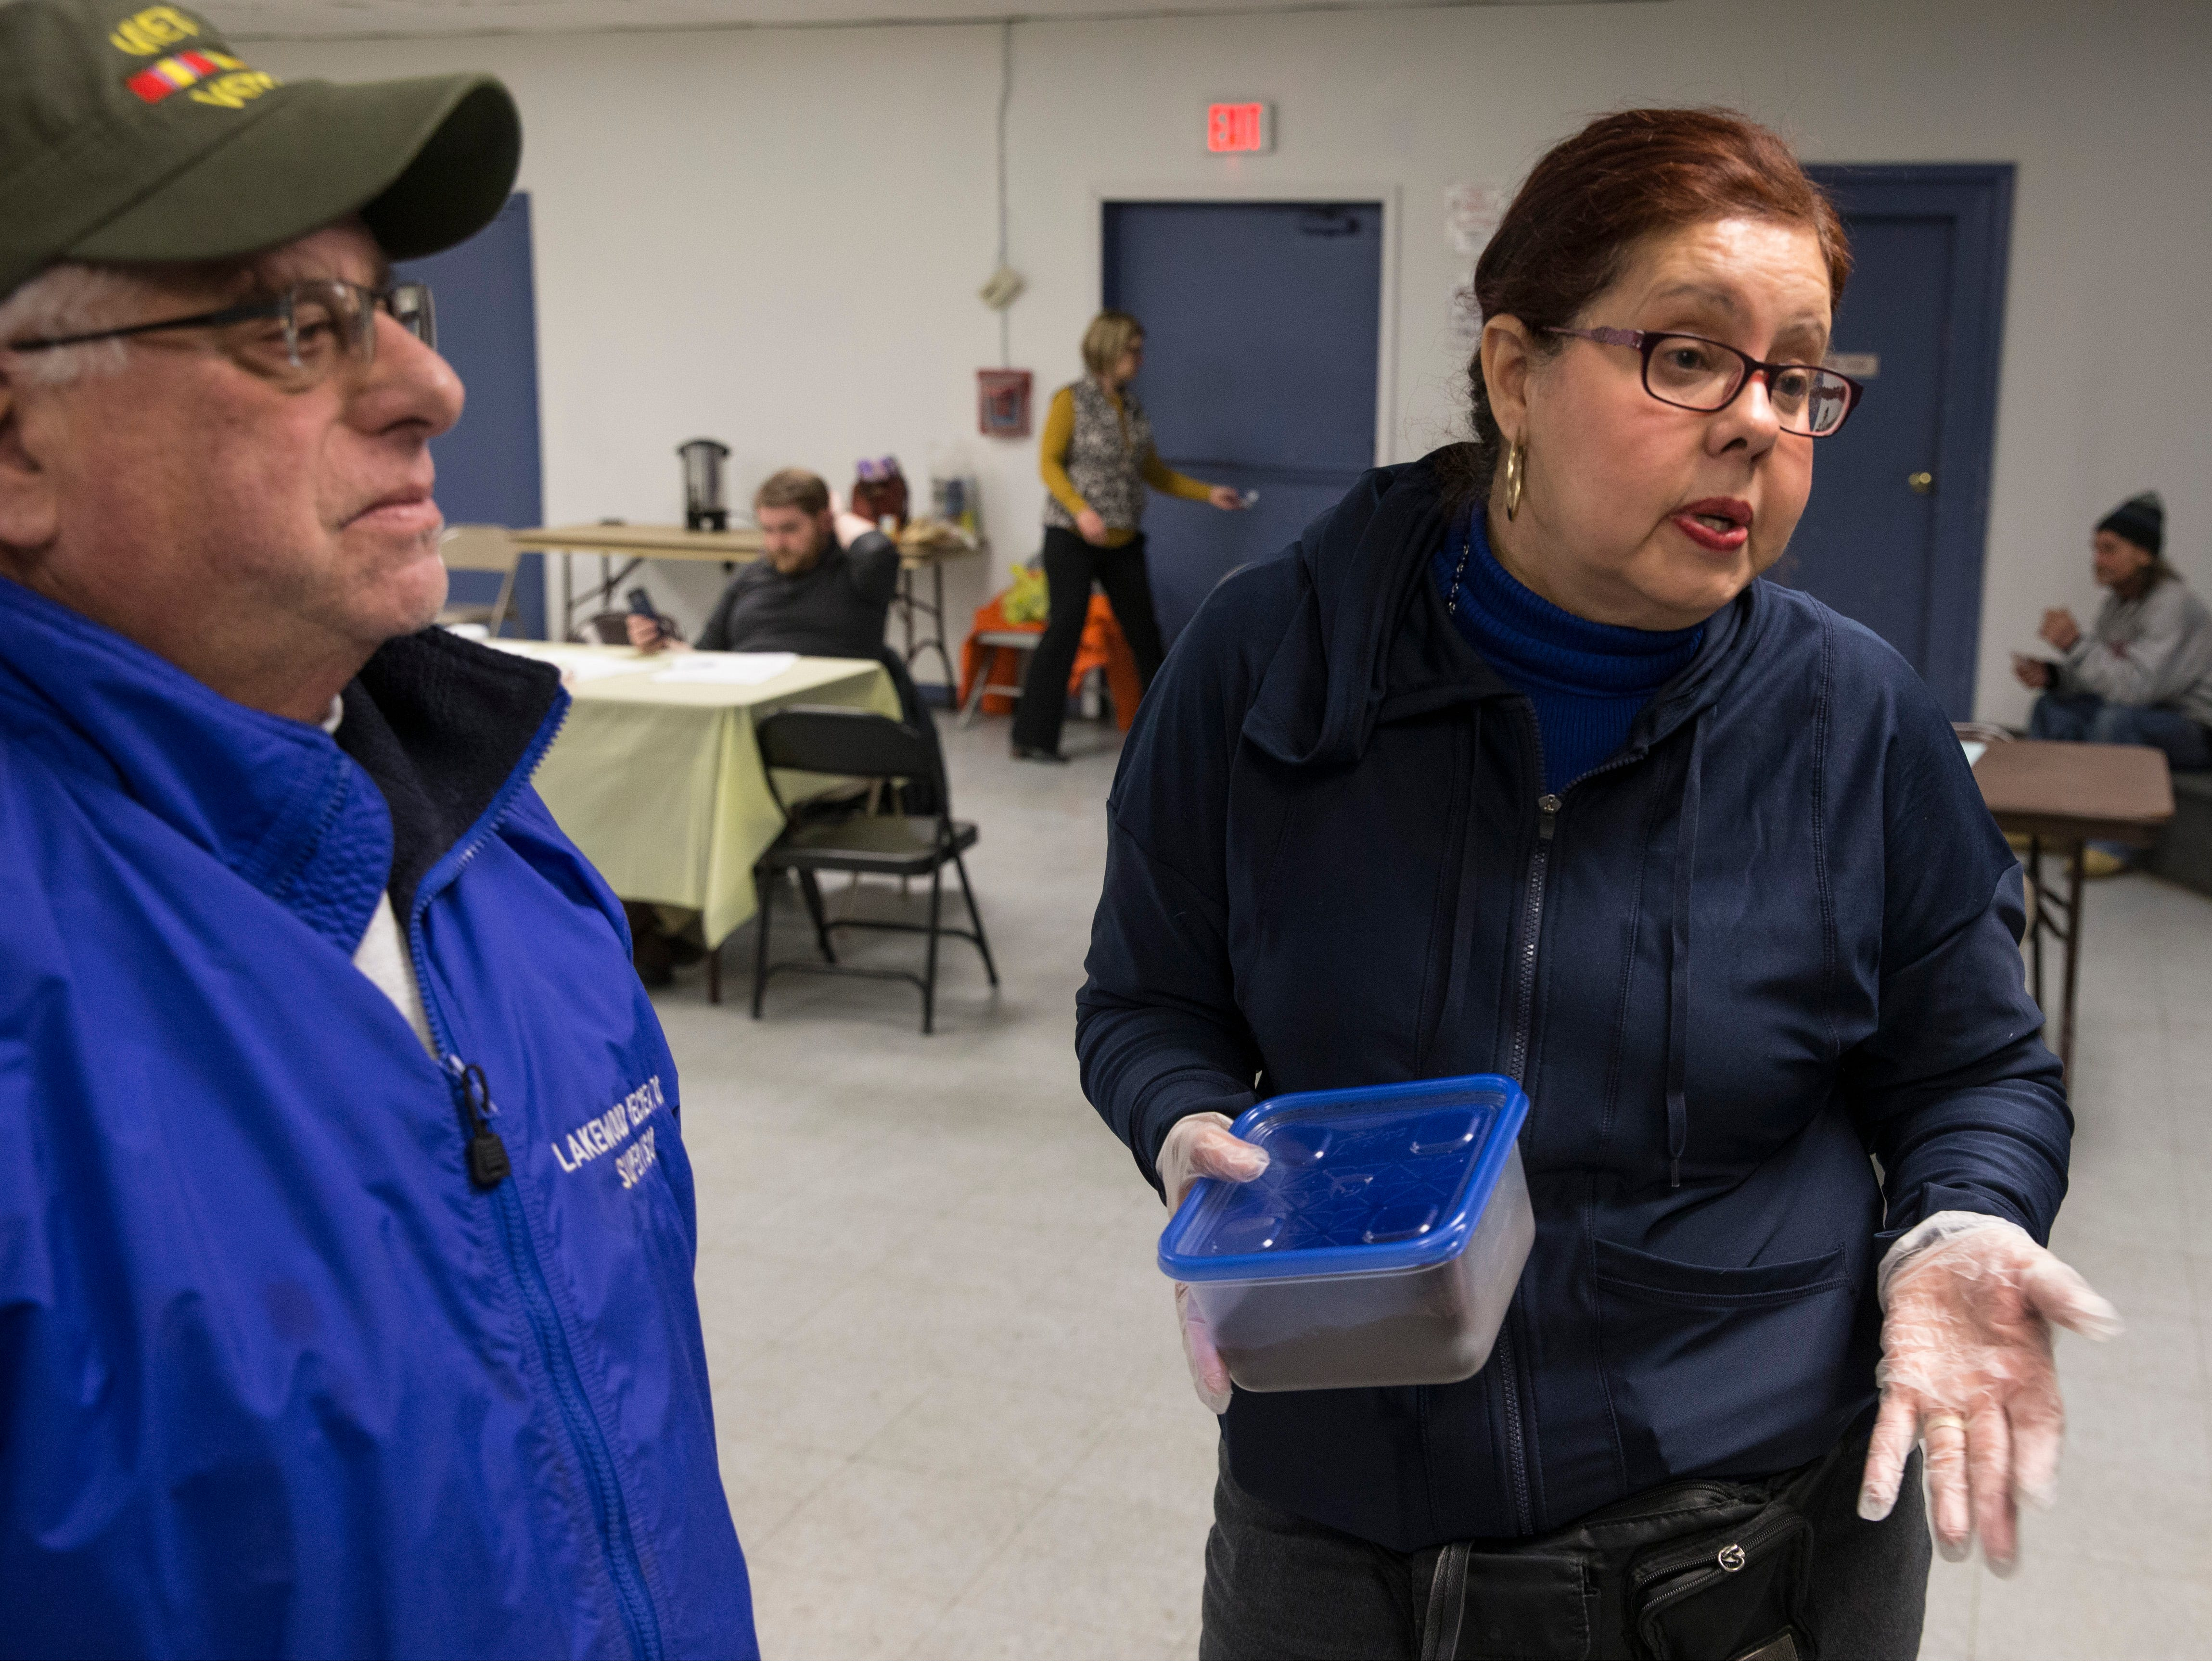 Jeff Shapiro, supervisor, Lakewood Recreation, and Wanda Alfaro, Ending Homeless Program, talk about the services offered at Lakewood Community Center. New Jersey housing advocates conduct the state's annual NJCounts, a point-in-time count of homelessness.       Lakewood, NJWednesday, January 23, 2019